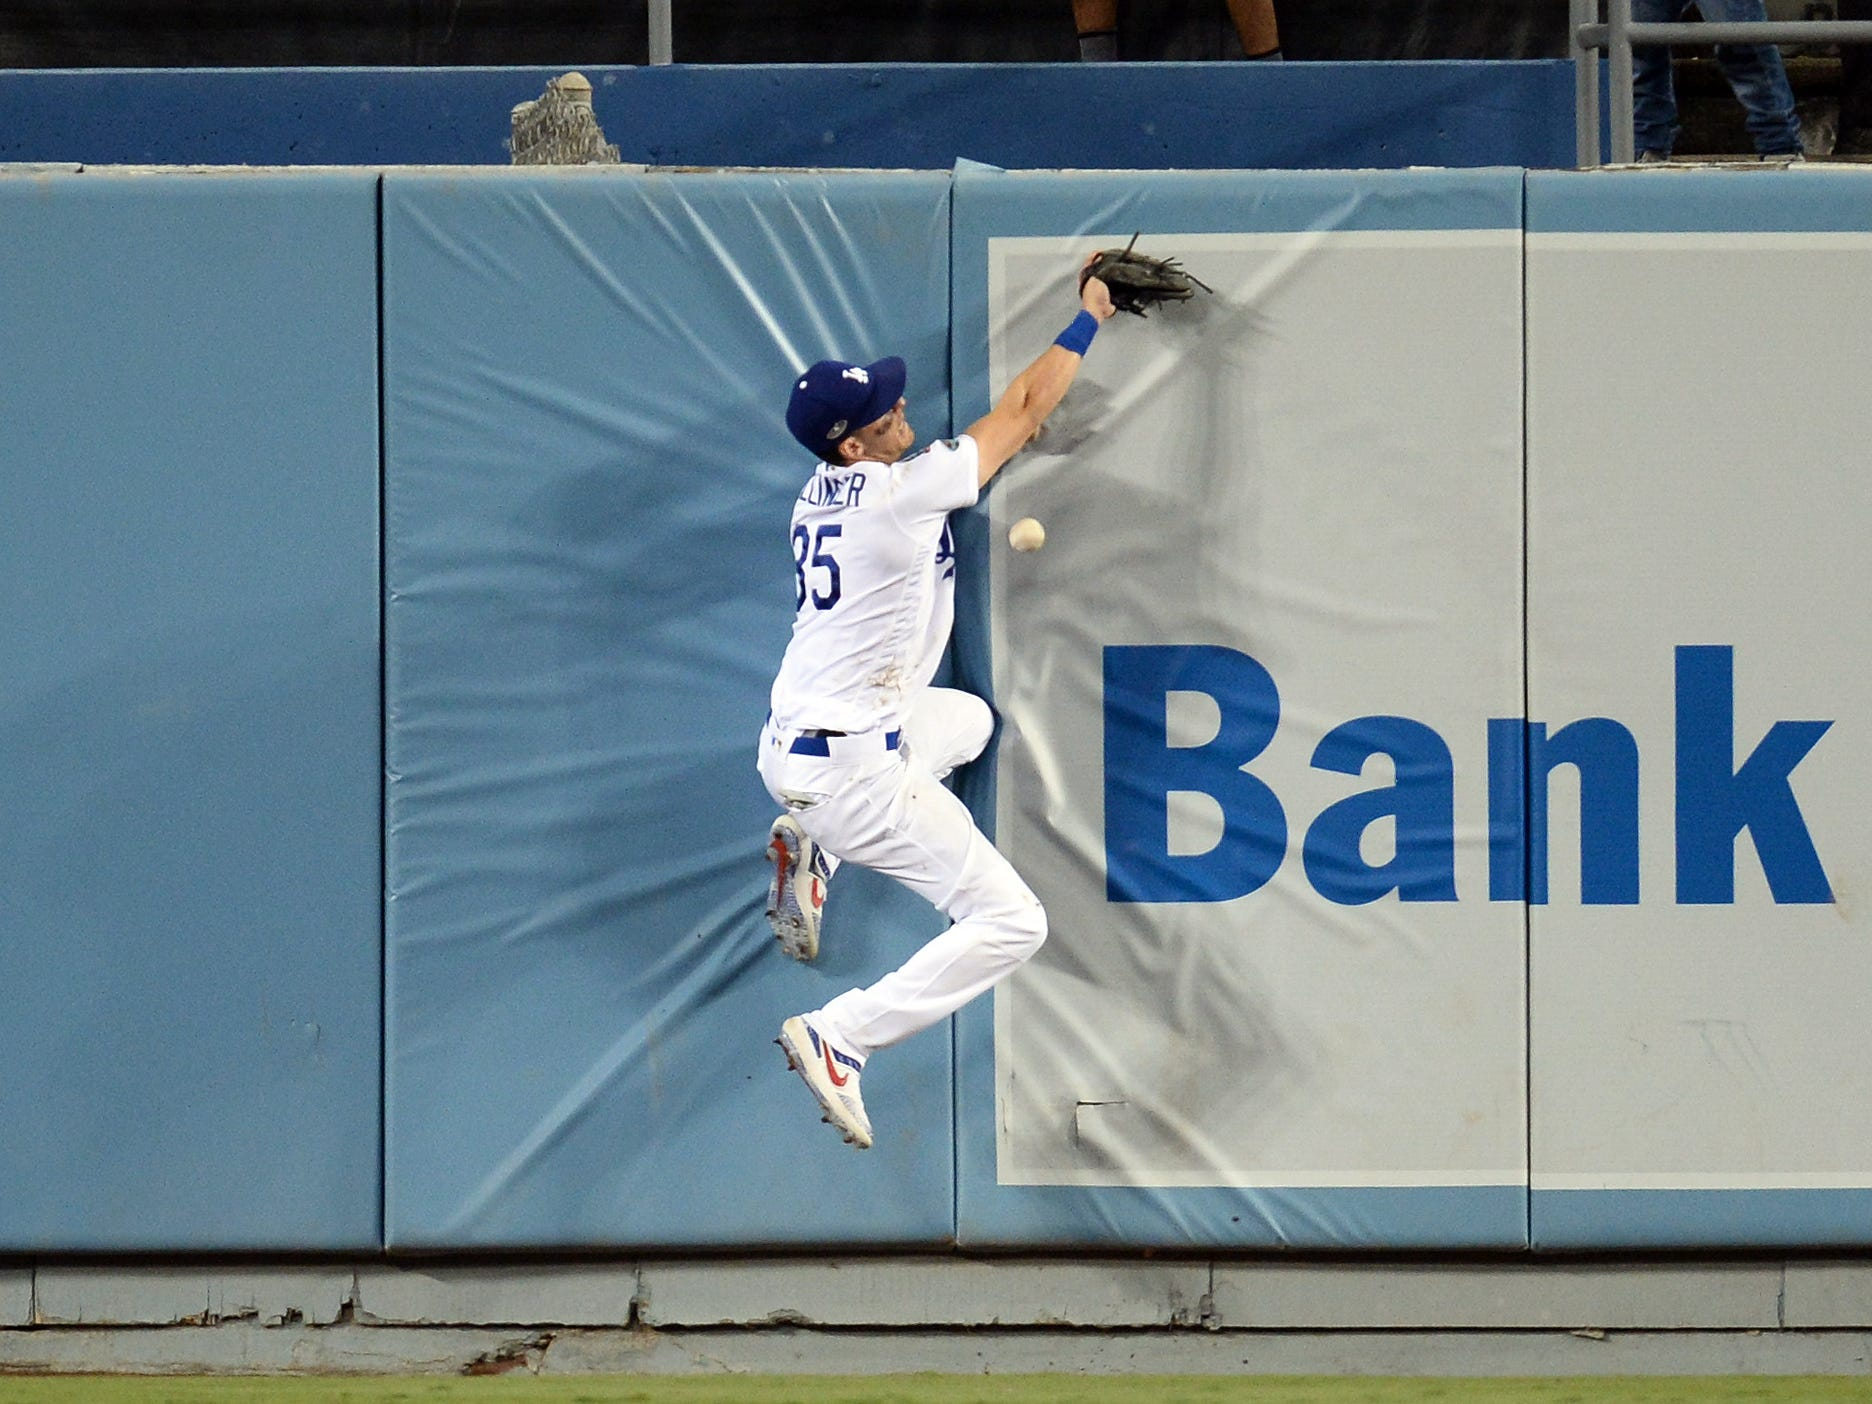 NLCS Game 3: Dodgers center fielder Cody Bellinger can't make a catch on a ball off the bat of Brewers second baseman Travis Shaw in the sixth inning.